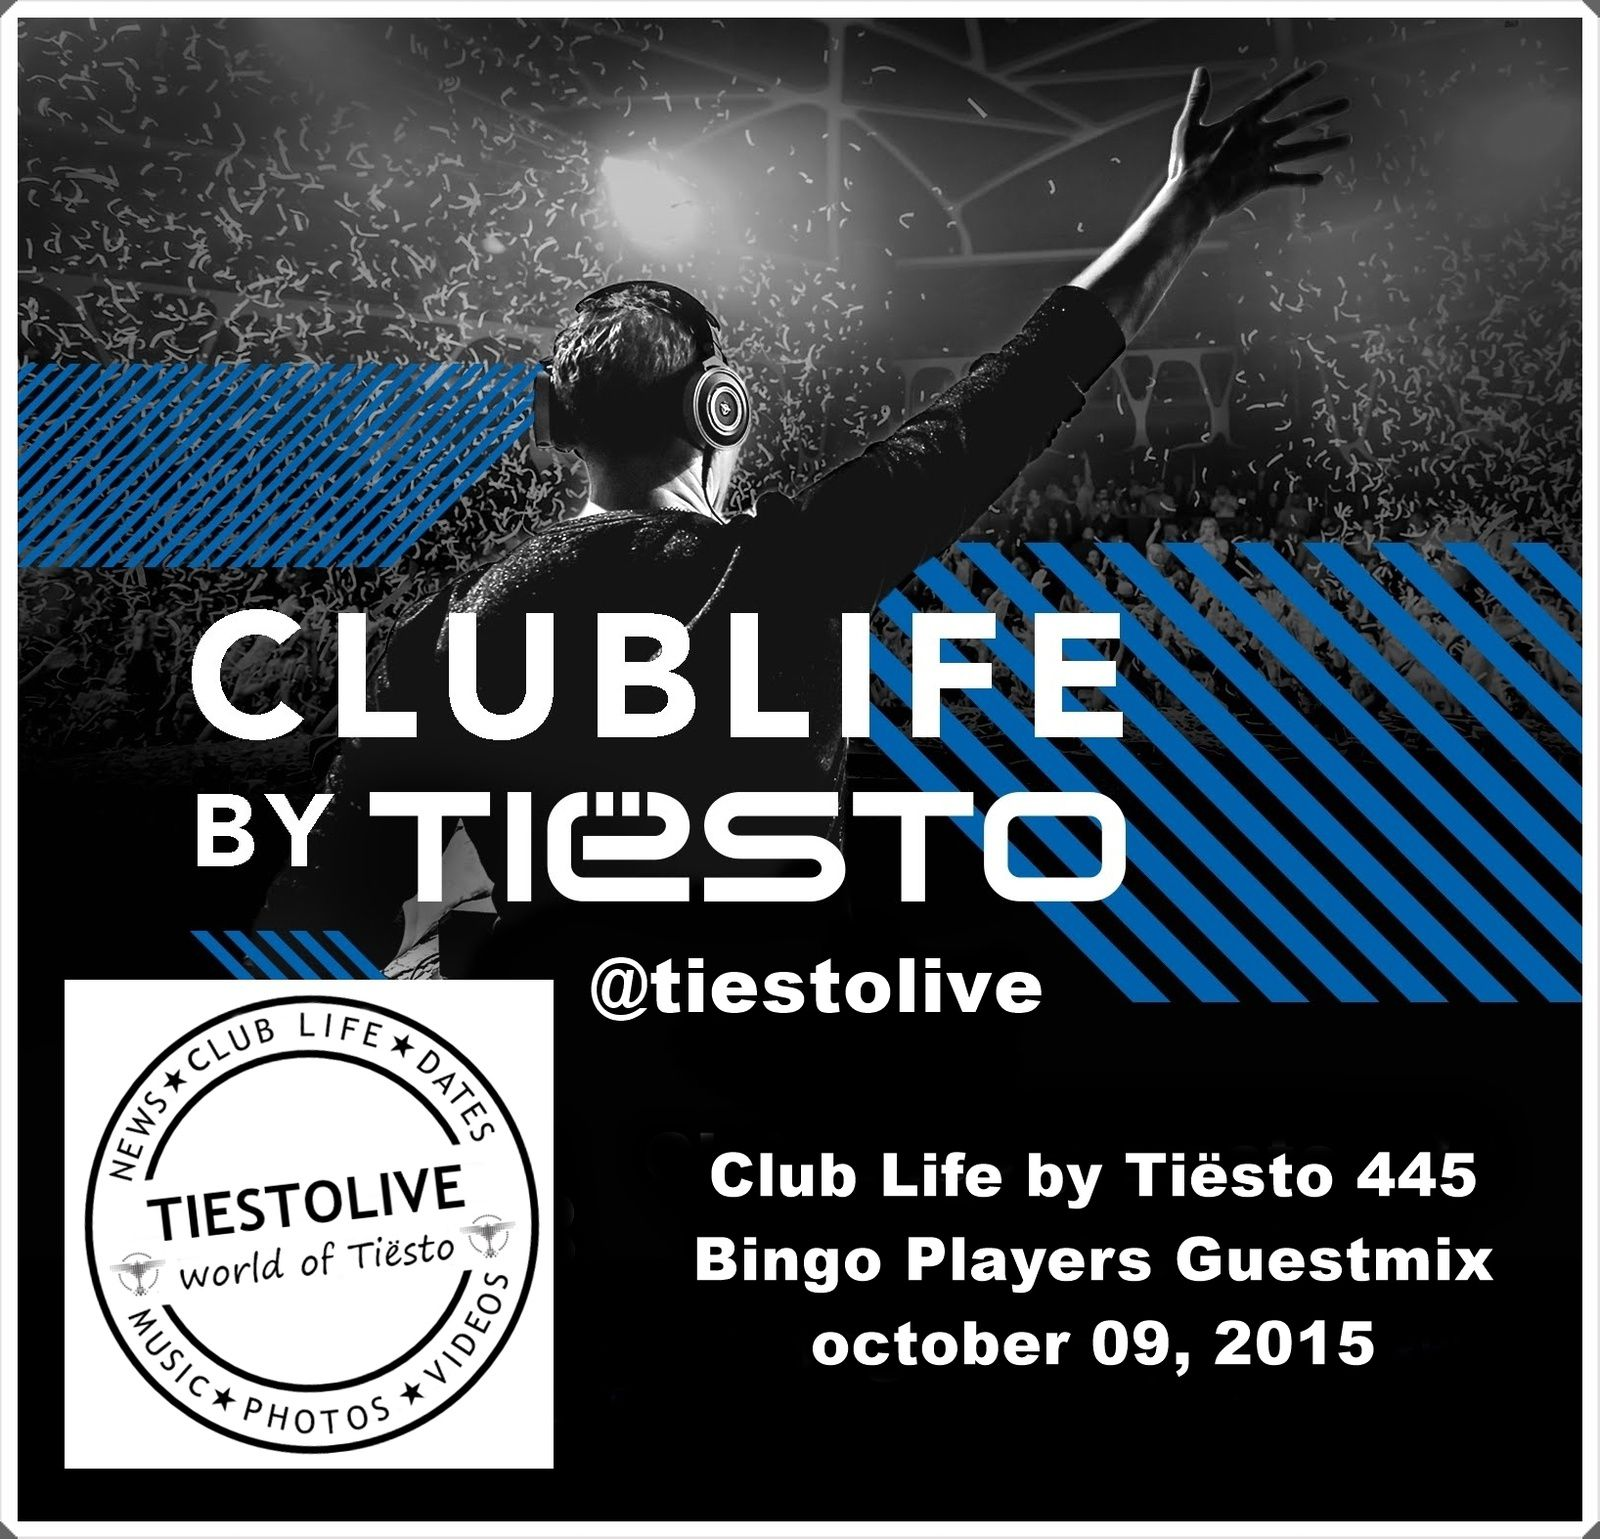 Club Life by Tiësto 445 - Bingo Players Guestmix - october 09, 2015